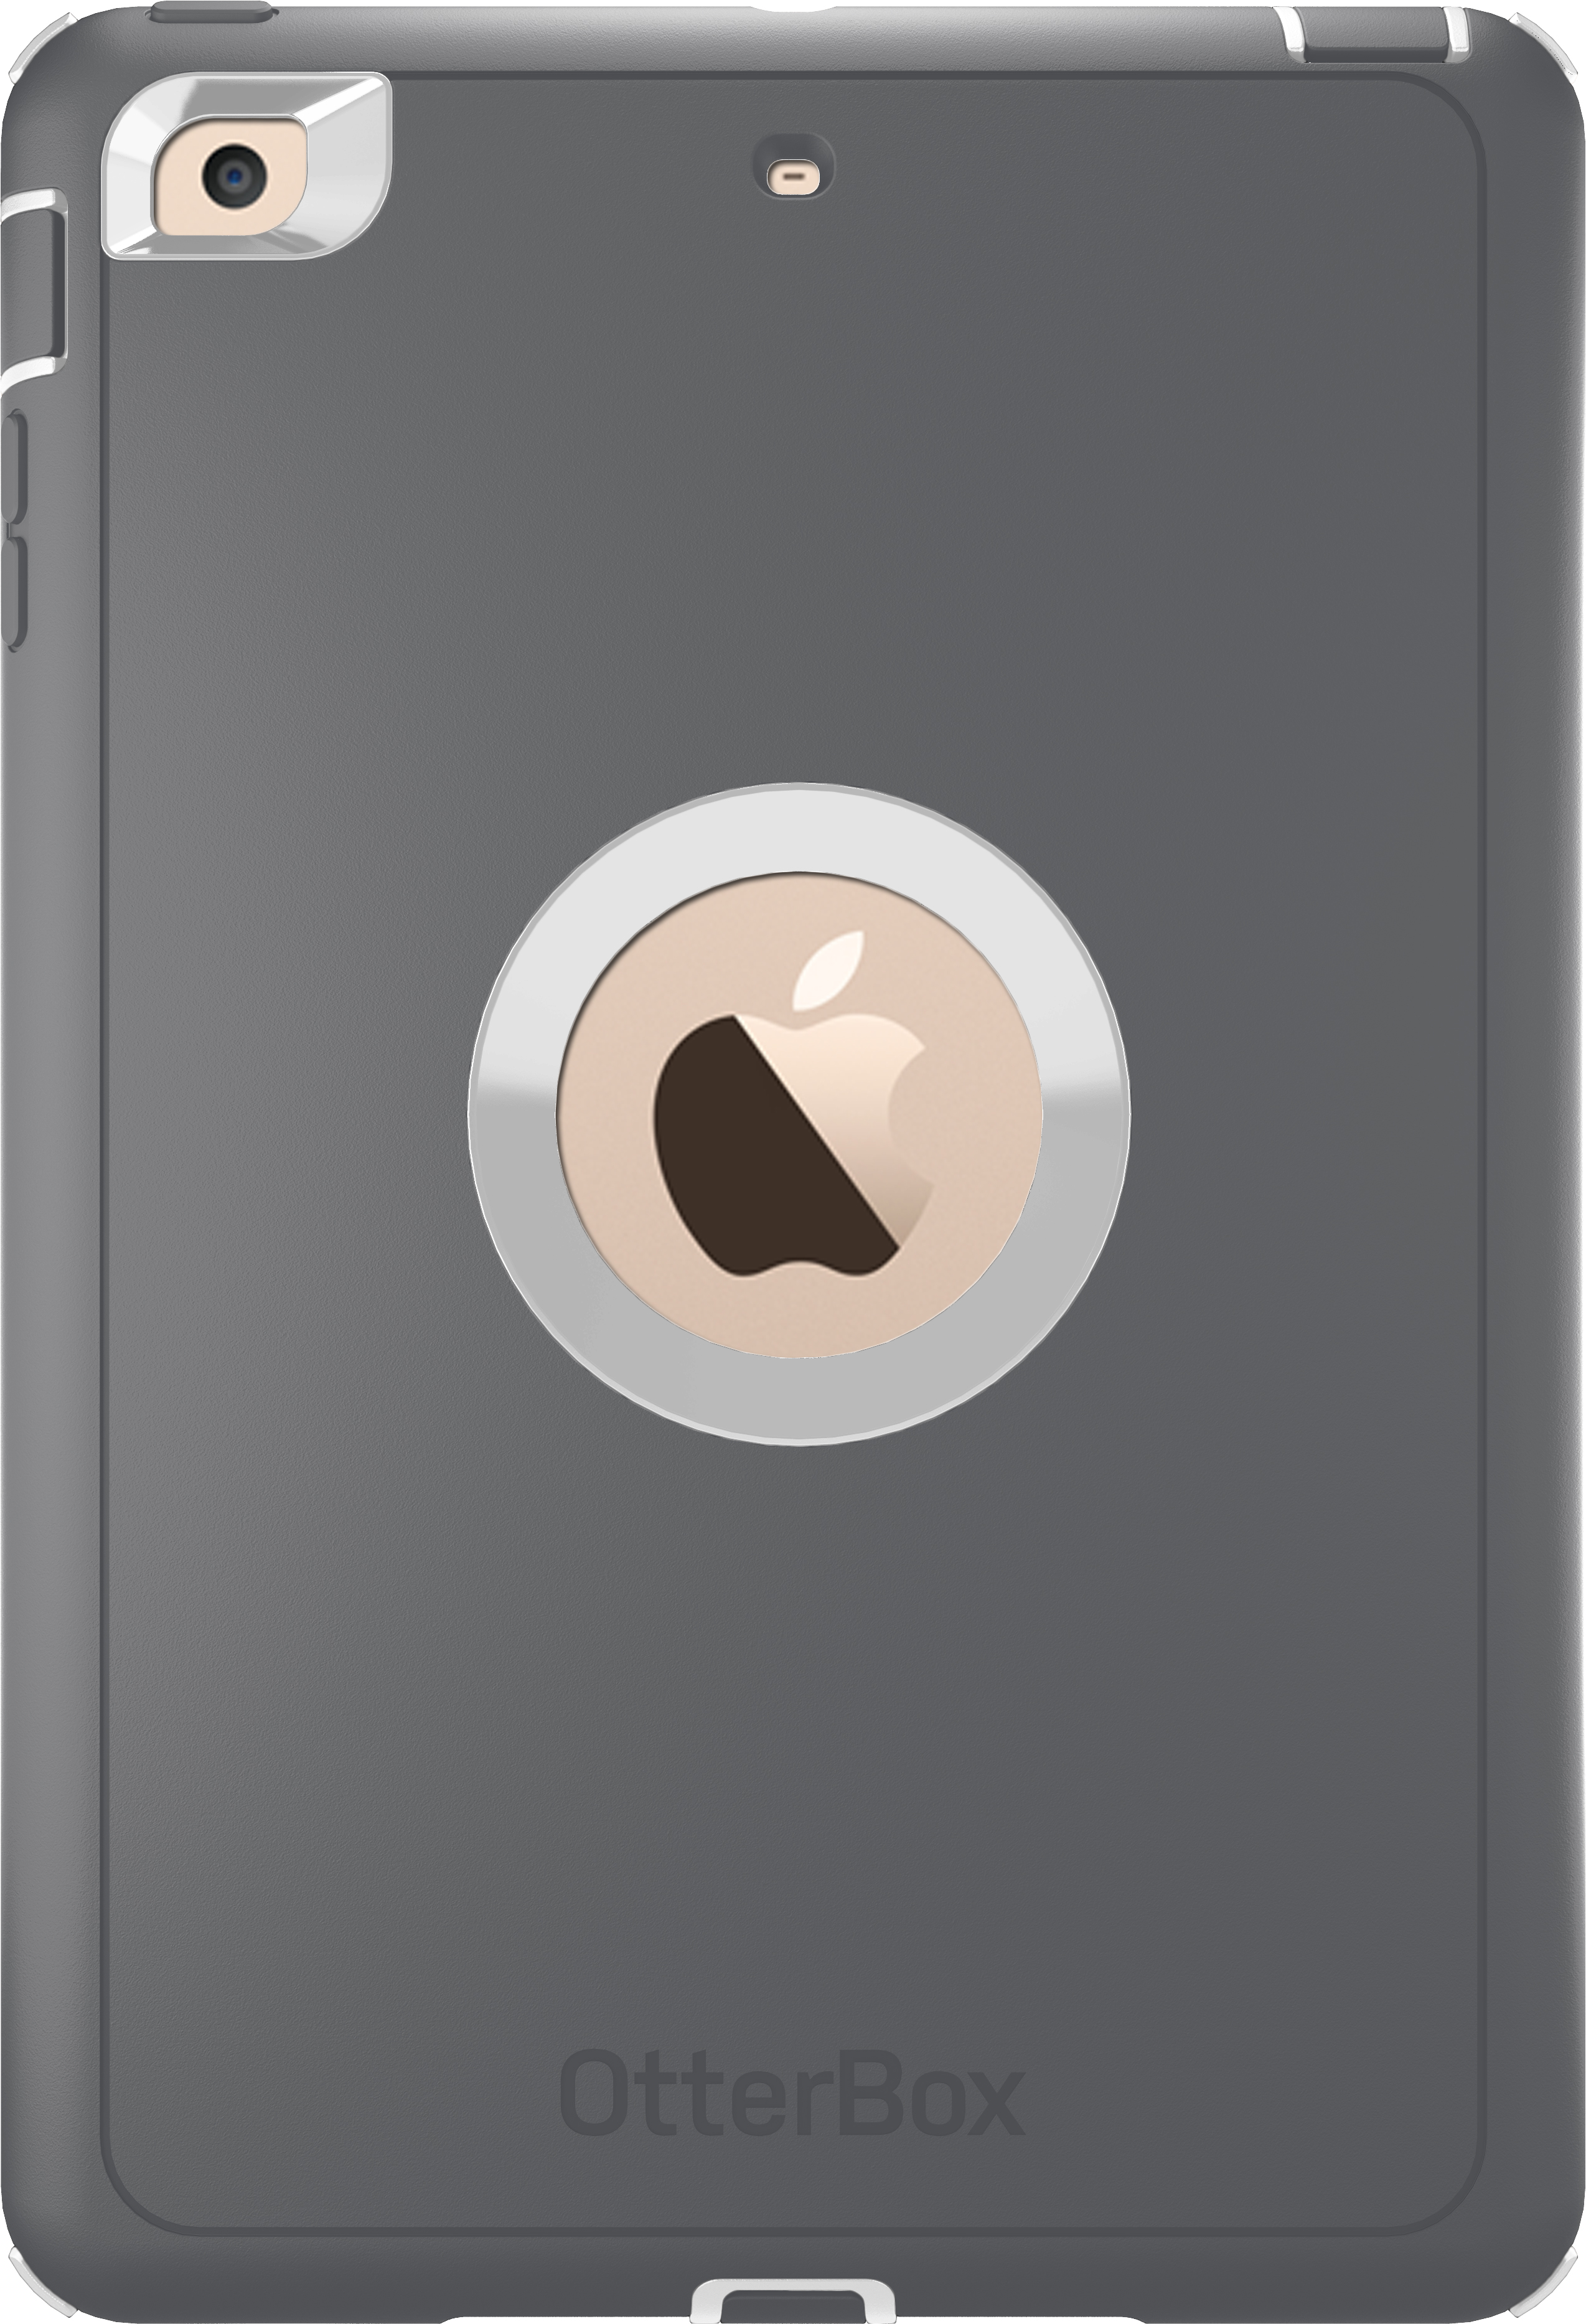 OtterBox Defender Series Case for iPad mini 3